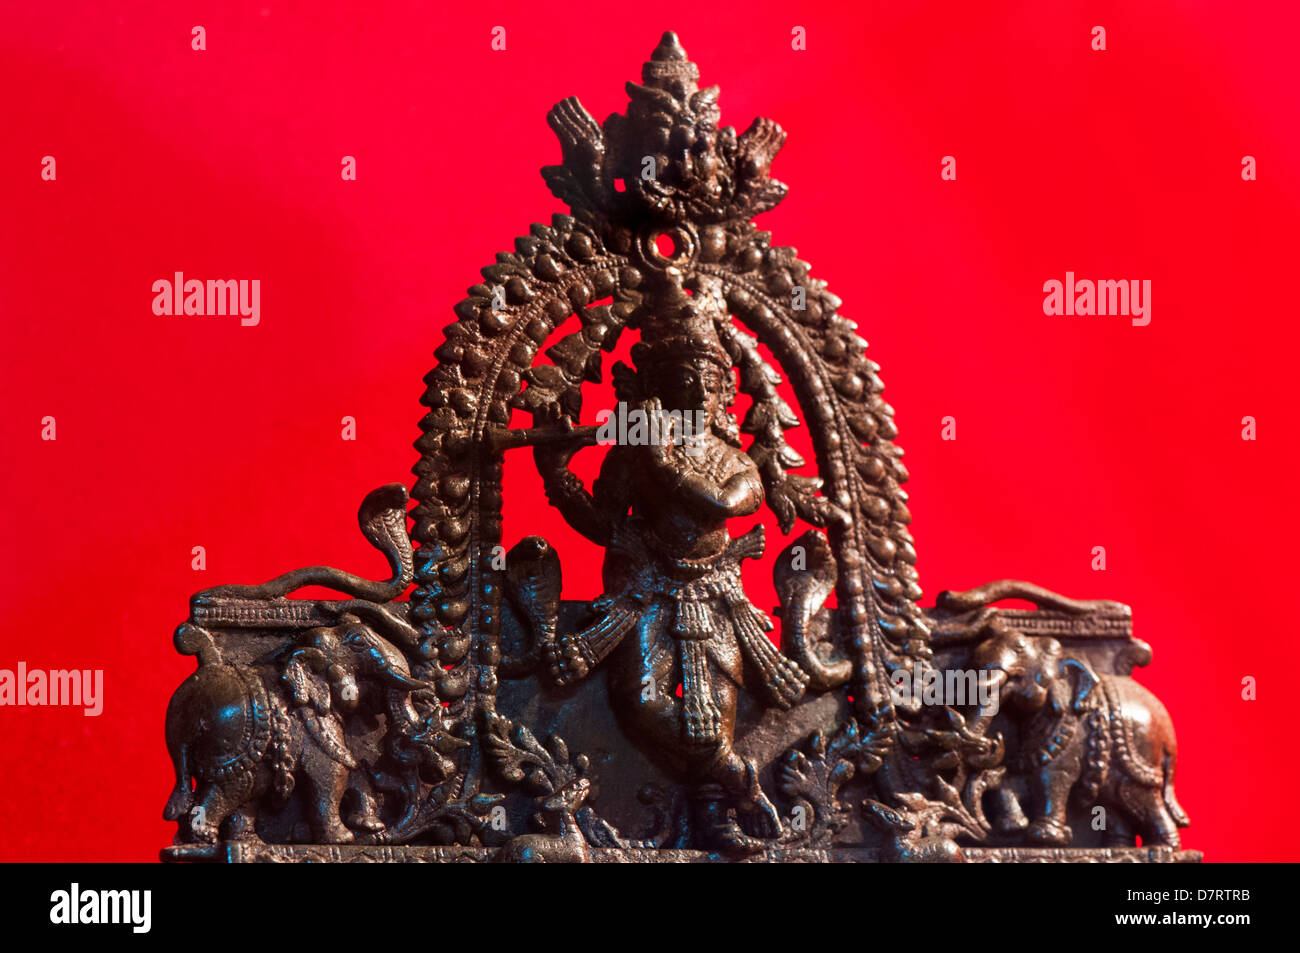 Lord Krishna playing flute stone statue - Stock Image